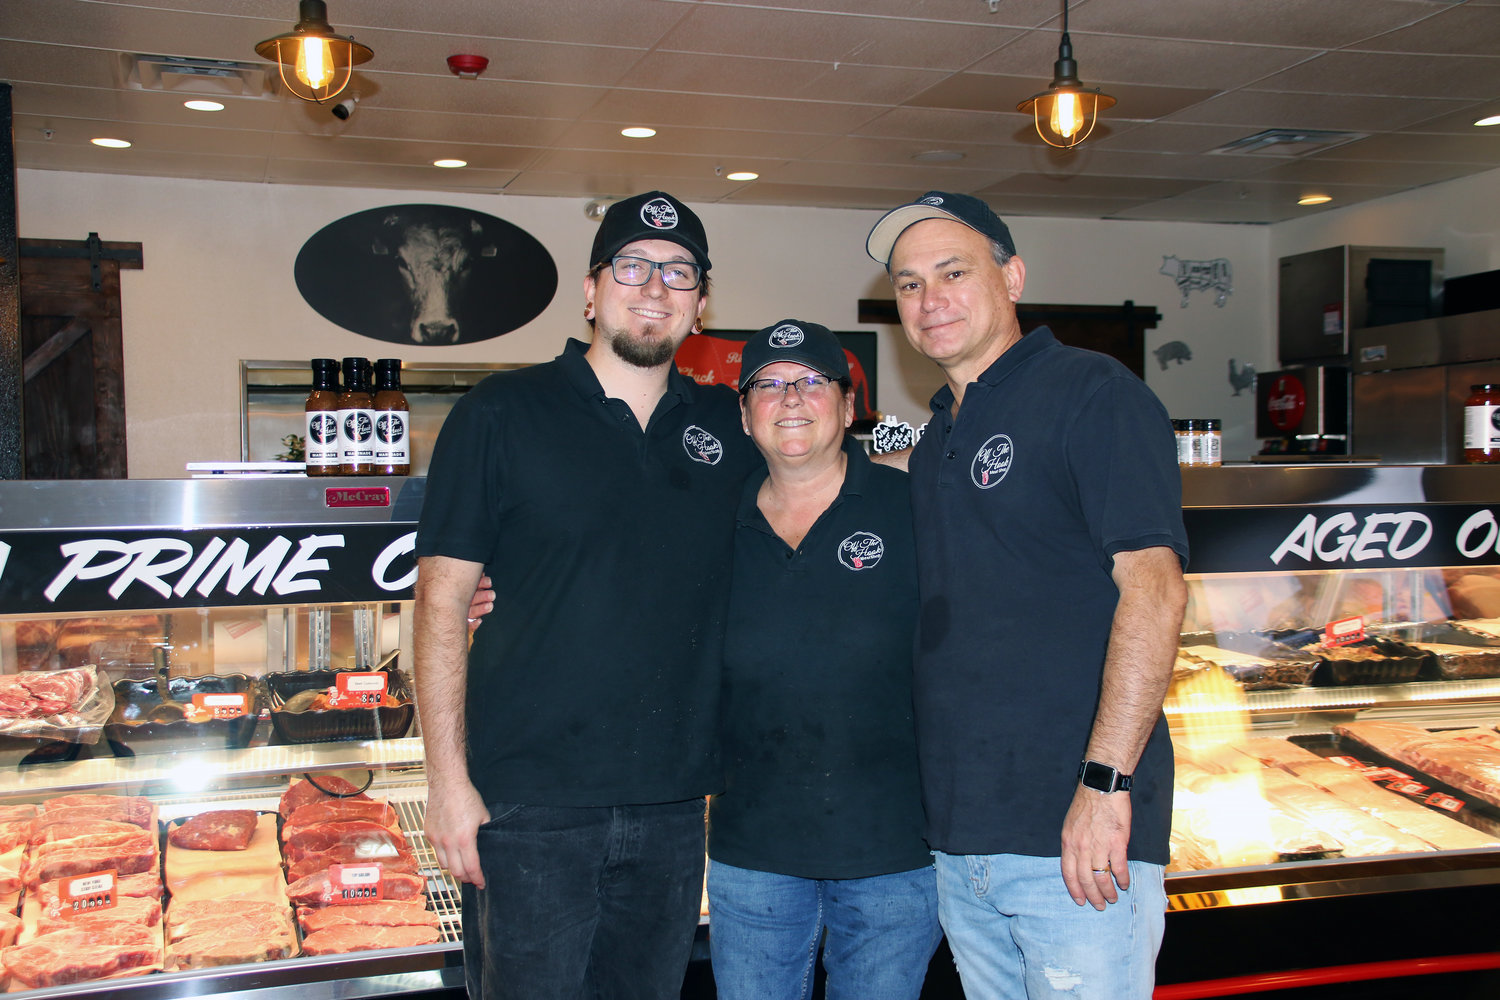 Zachary, left, Christine and Jim Ortega take a break from cutting meat and stocking the display case for a quick family portrait.